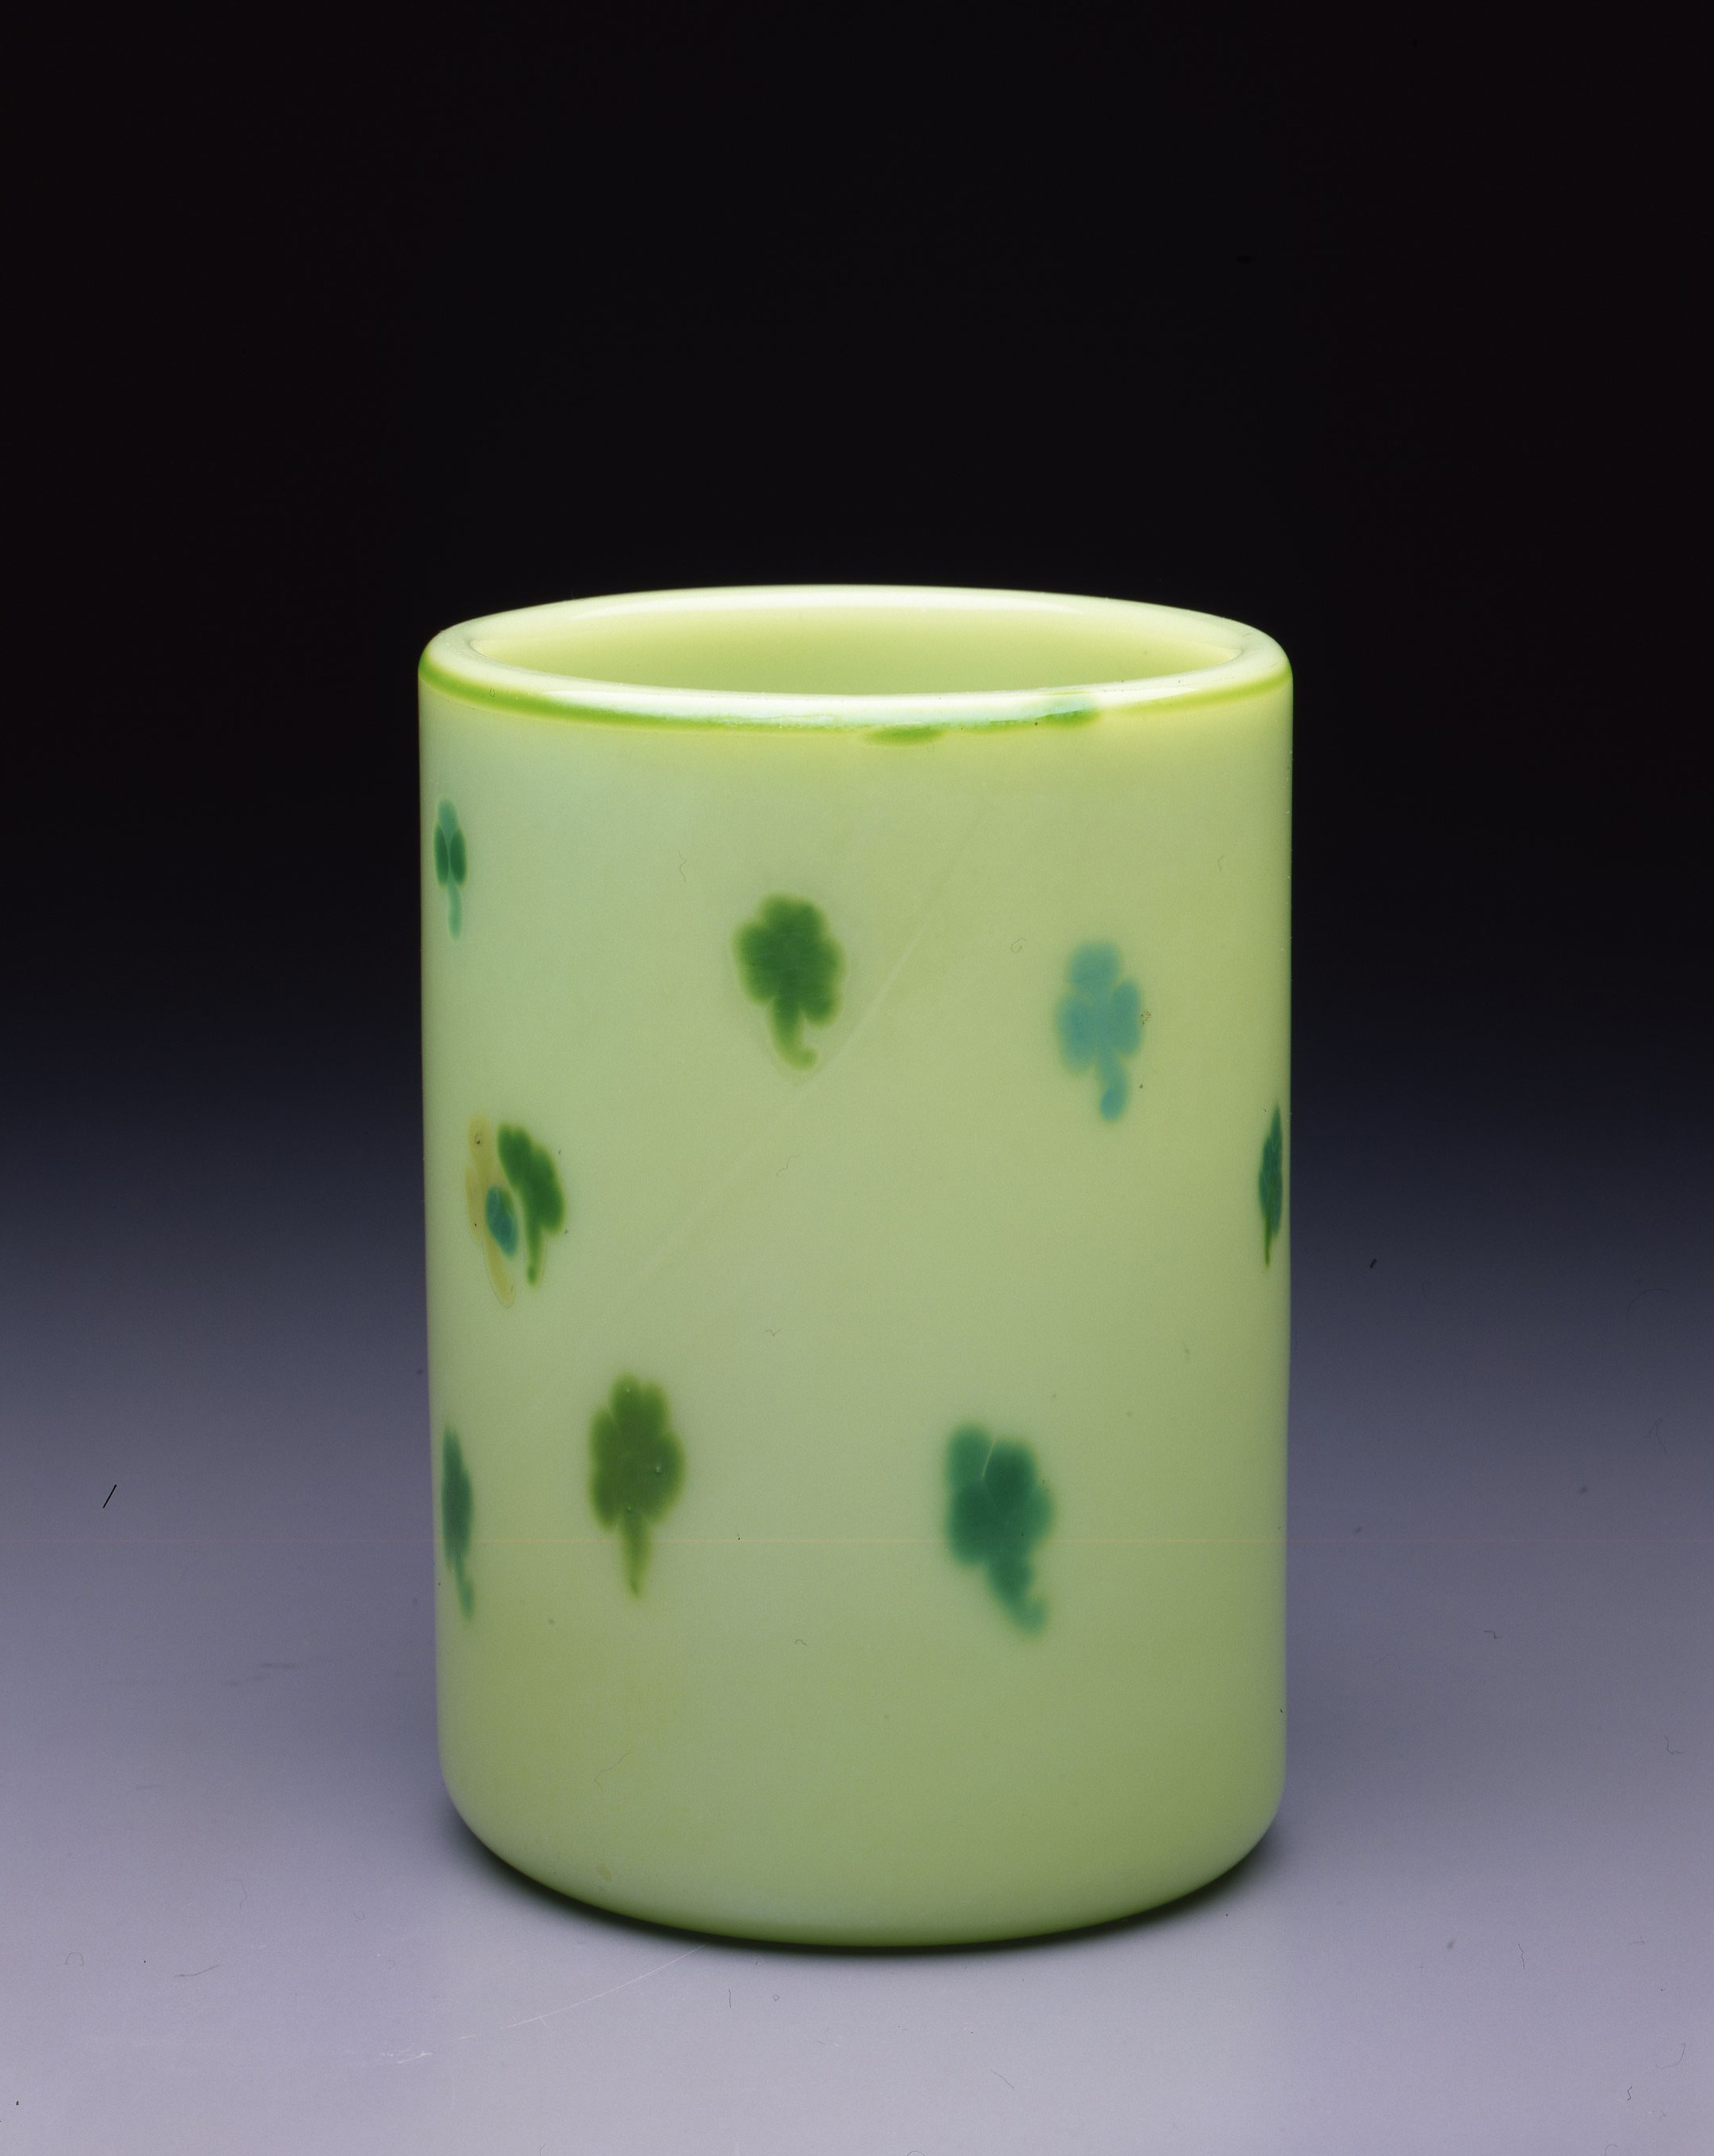 Dale Chihuly,  Irish Cylinder #8   (1975, glass, 7 1/2 x 5 inches), DC.270